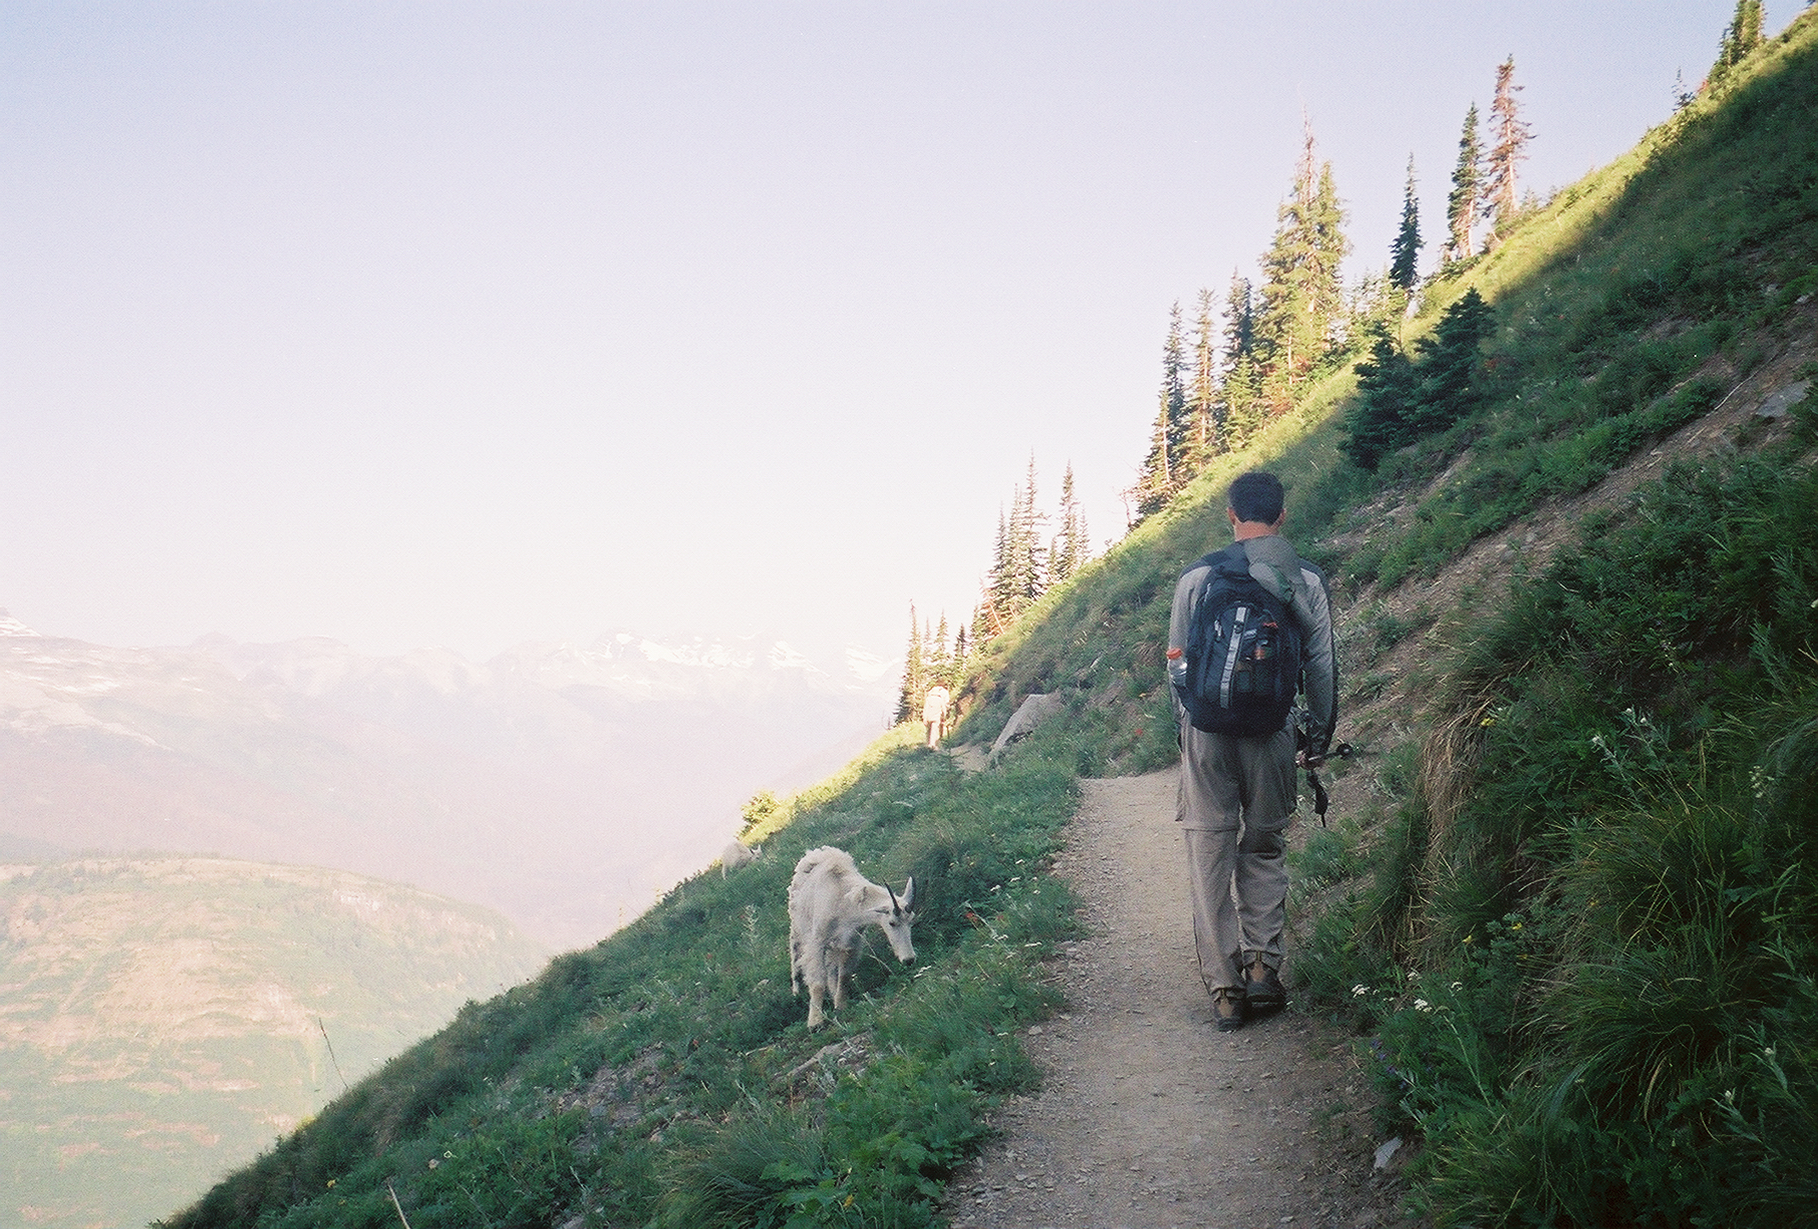 Hiking with Mountain Goats